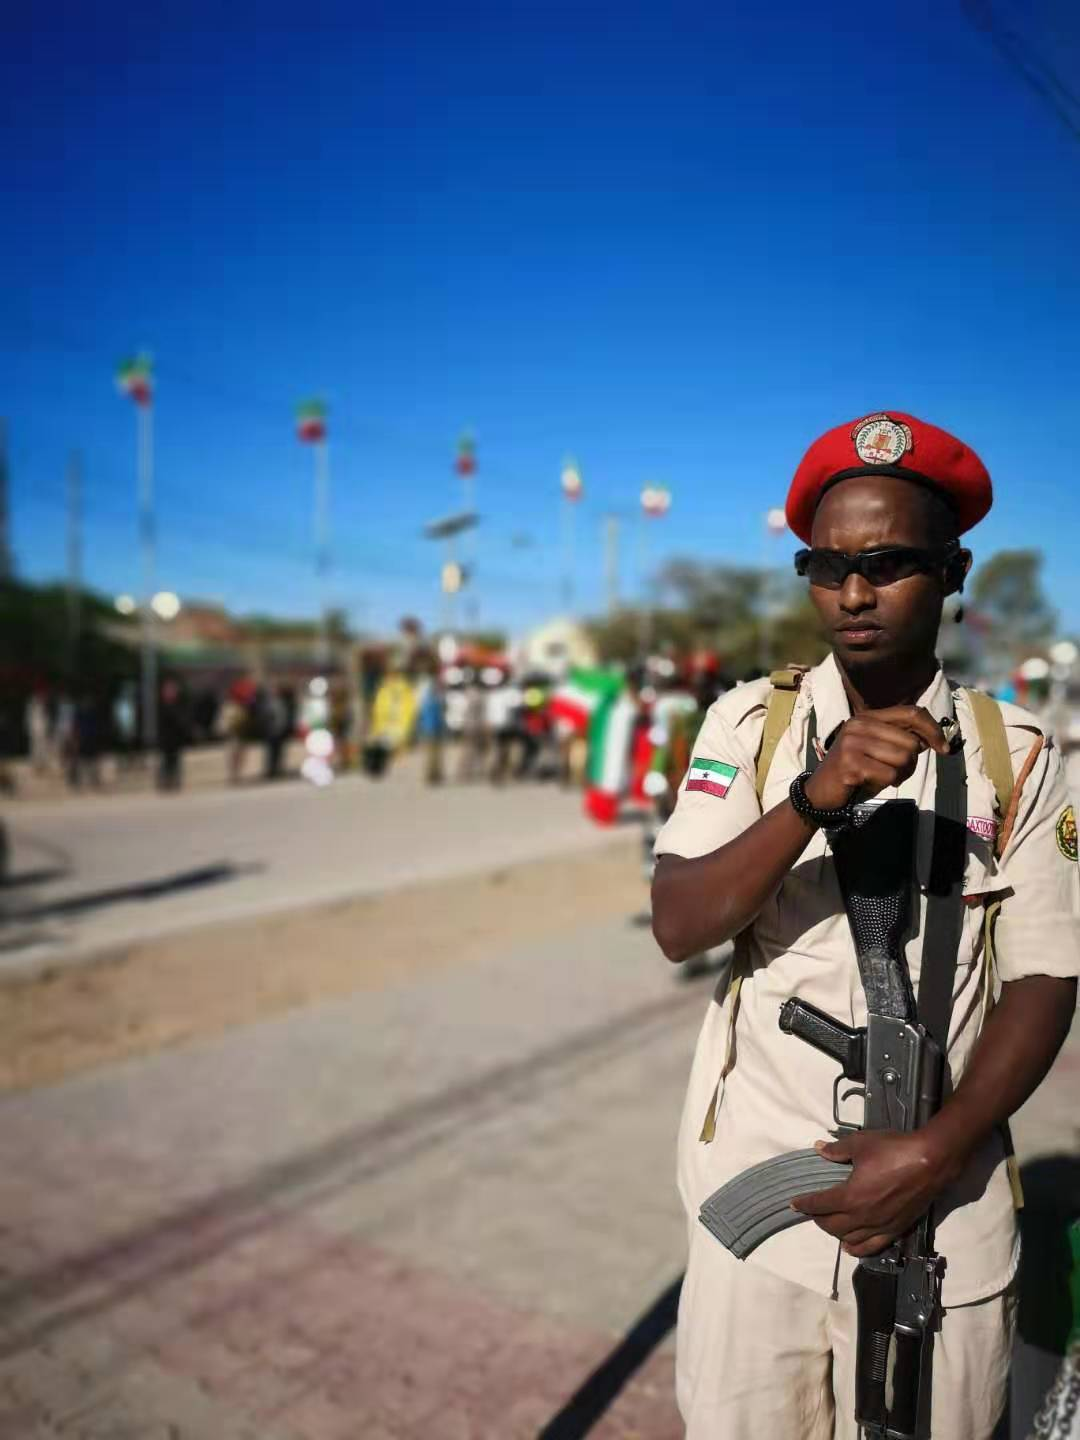 Guard during the Somaliland Independence Day Parade